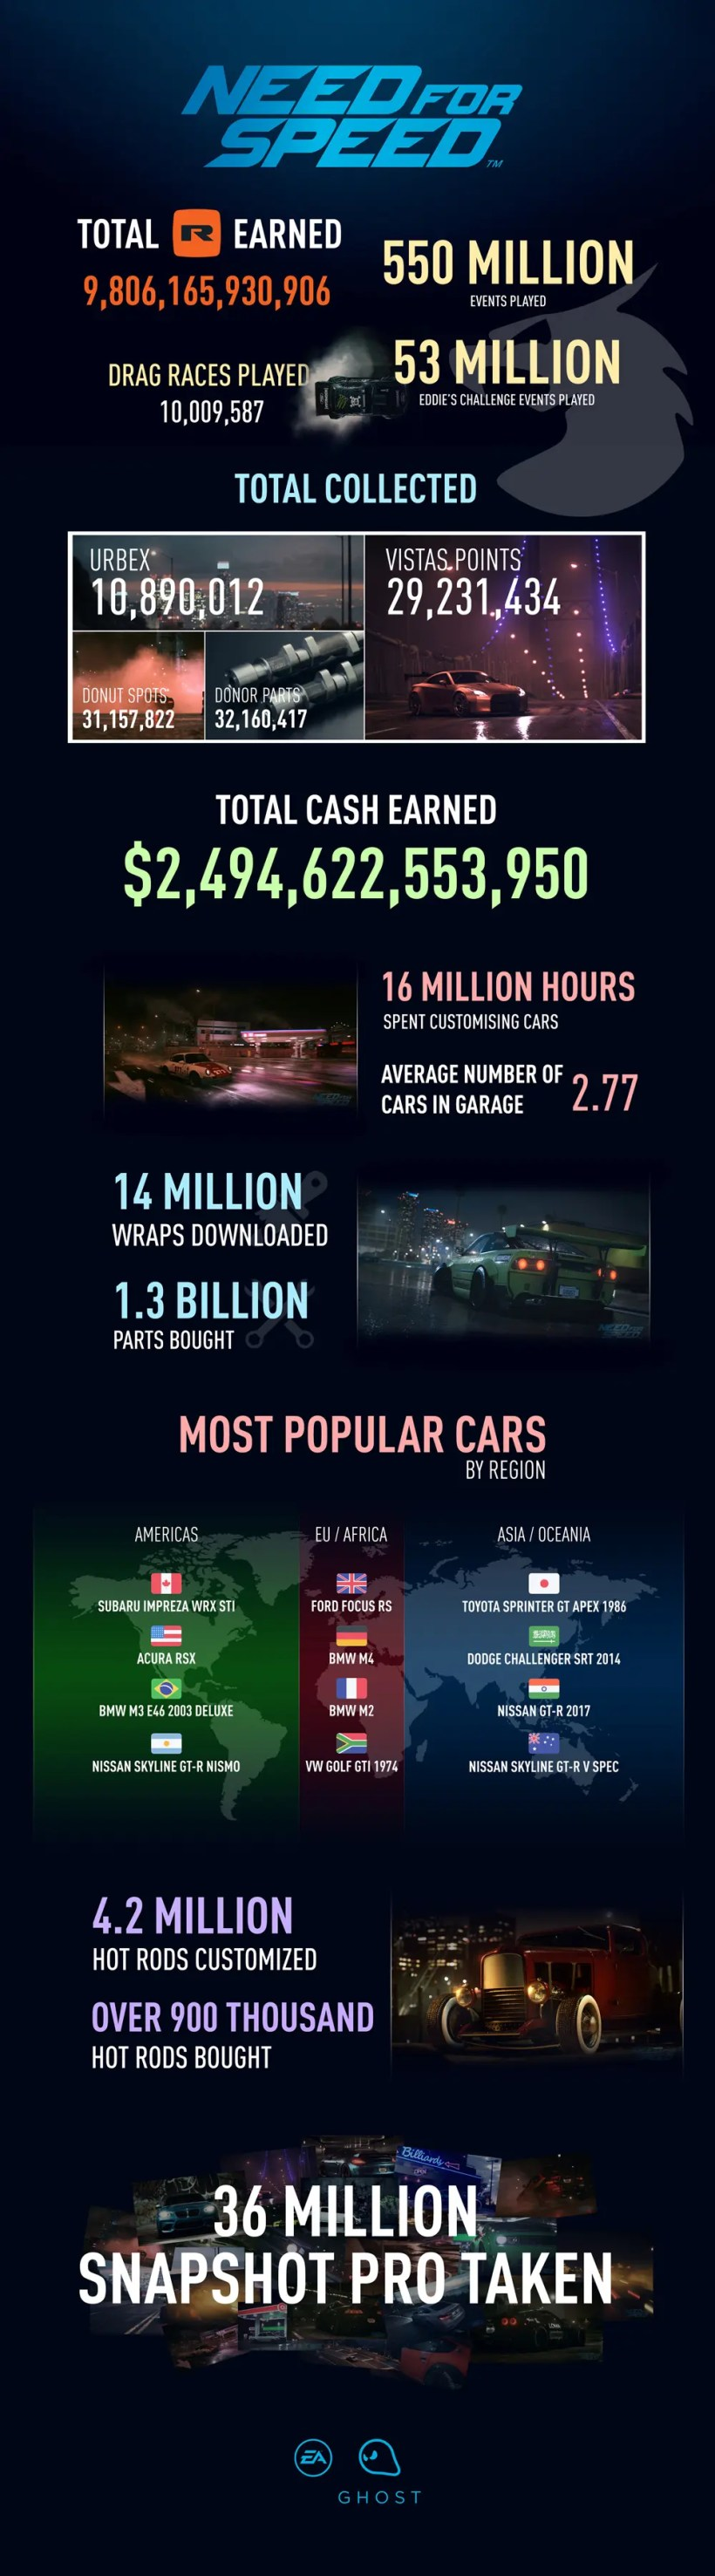 need for speed info